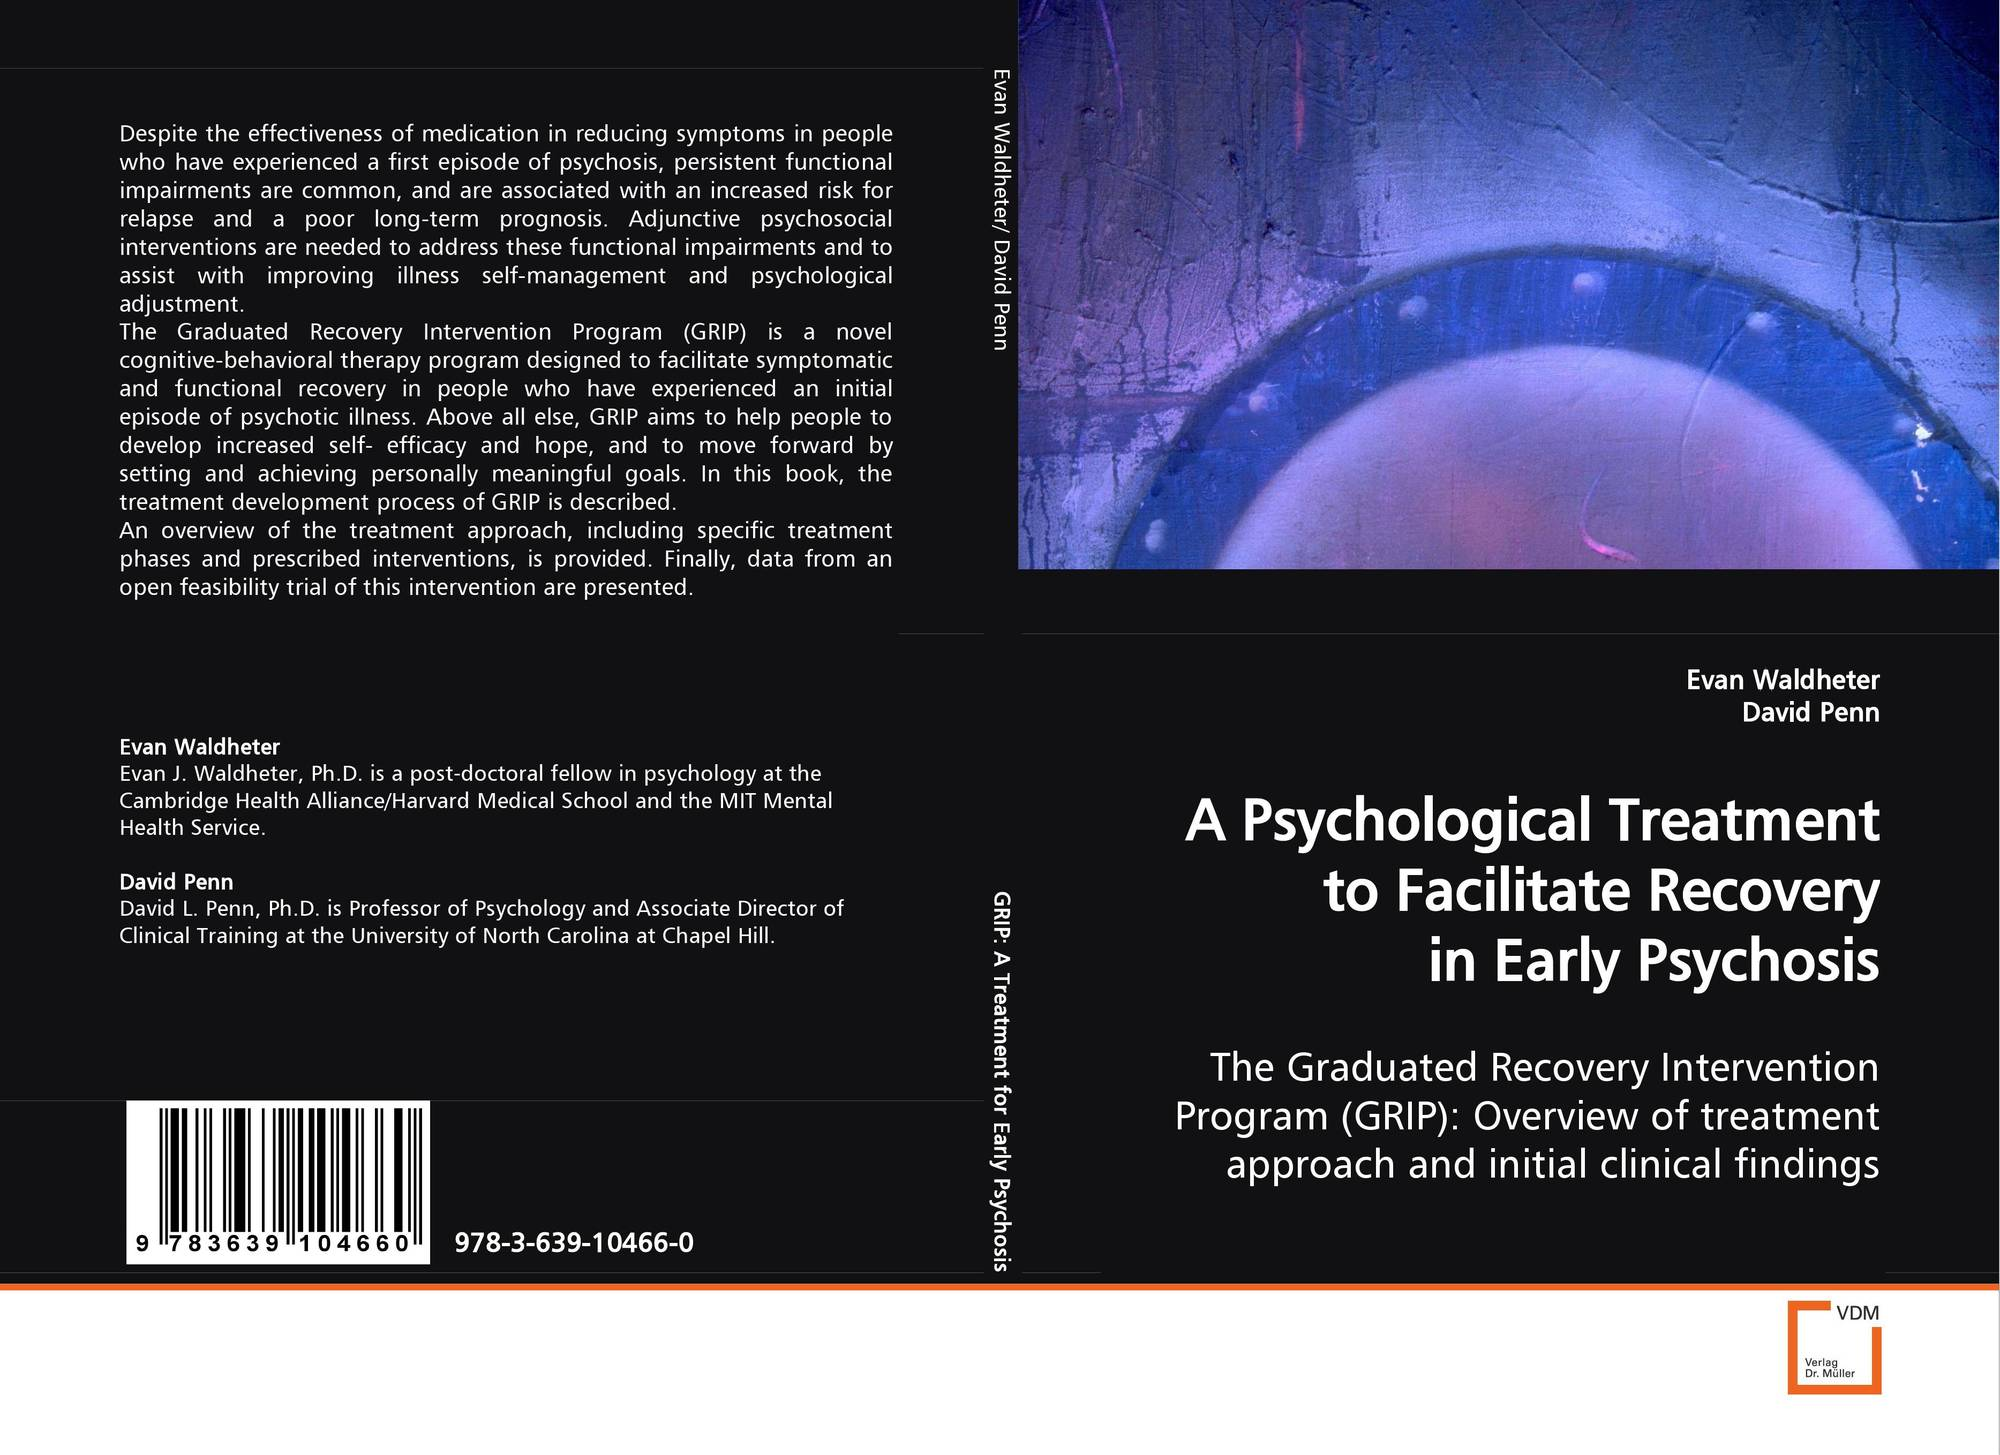 A Psychological Treatment to Facilitate Recoveryin Early